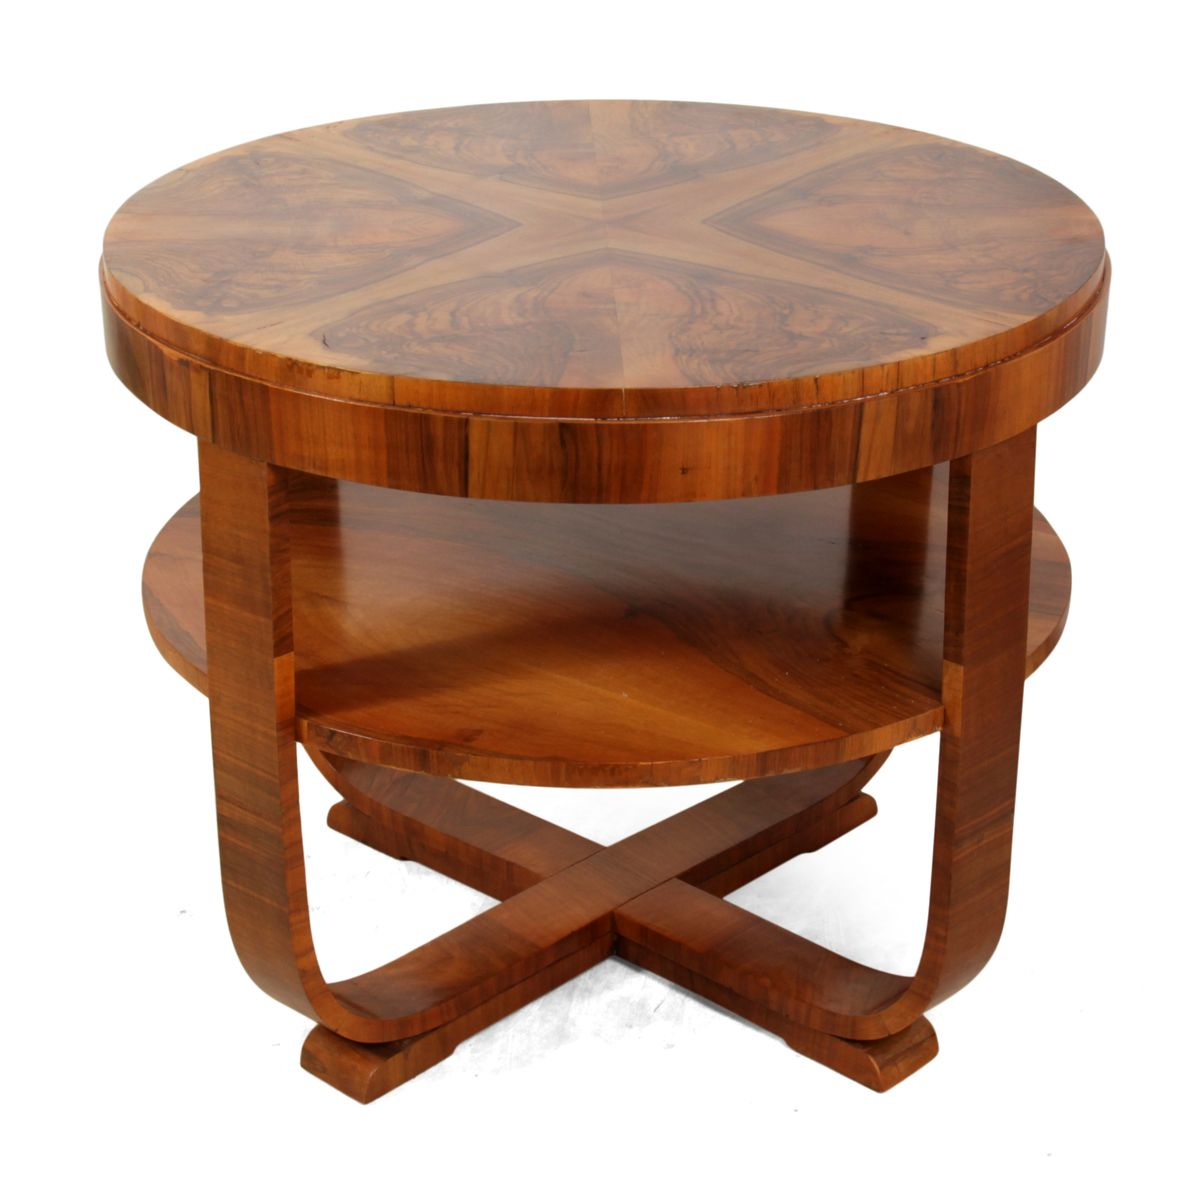 Art nouveau coffee table gallery coffee table design ideas art deco coffee table art deco coffee table in walnut 1930s for sale at pamono geotapseo geotapseo Images